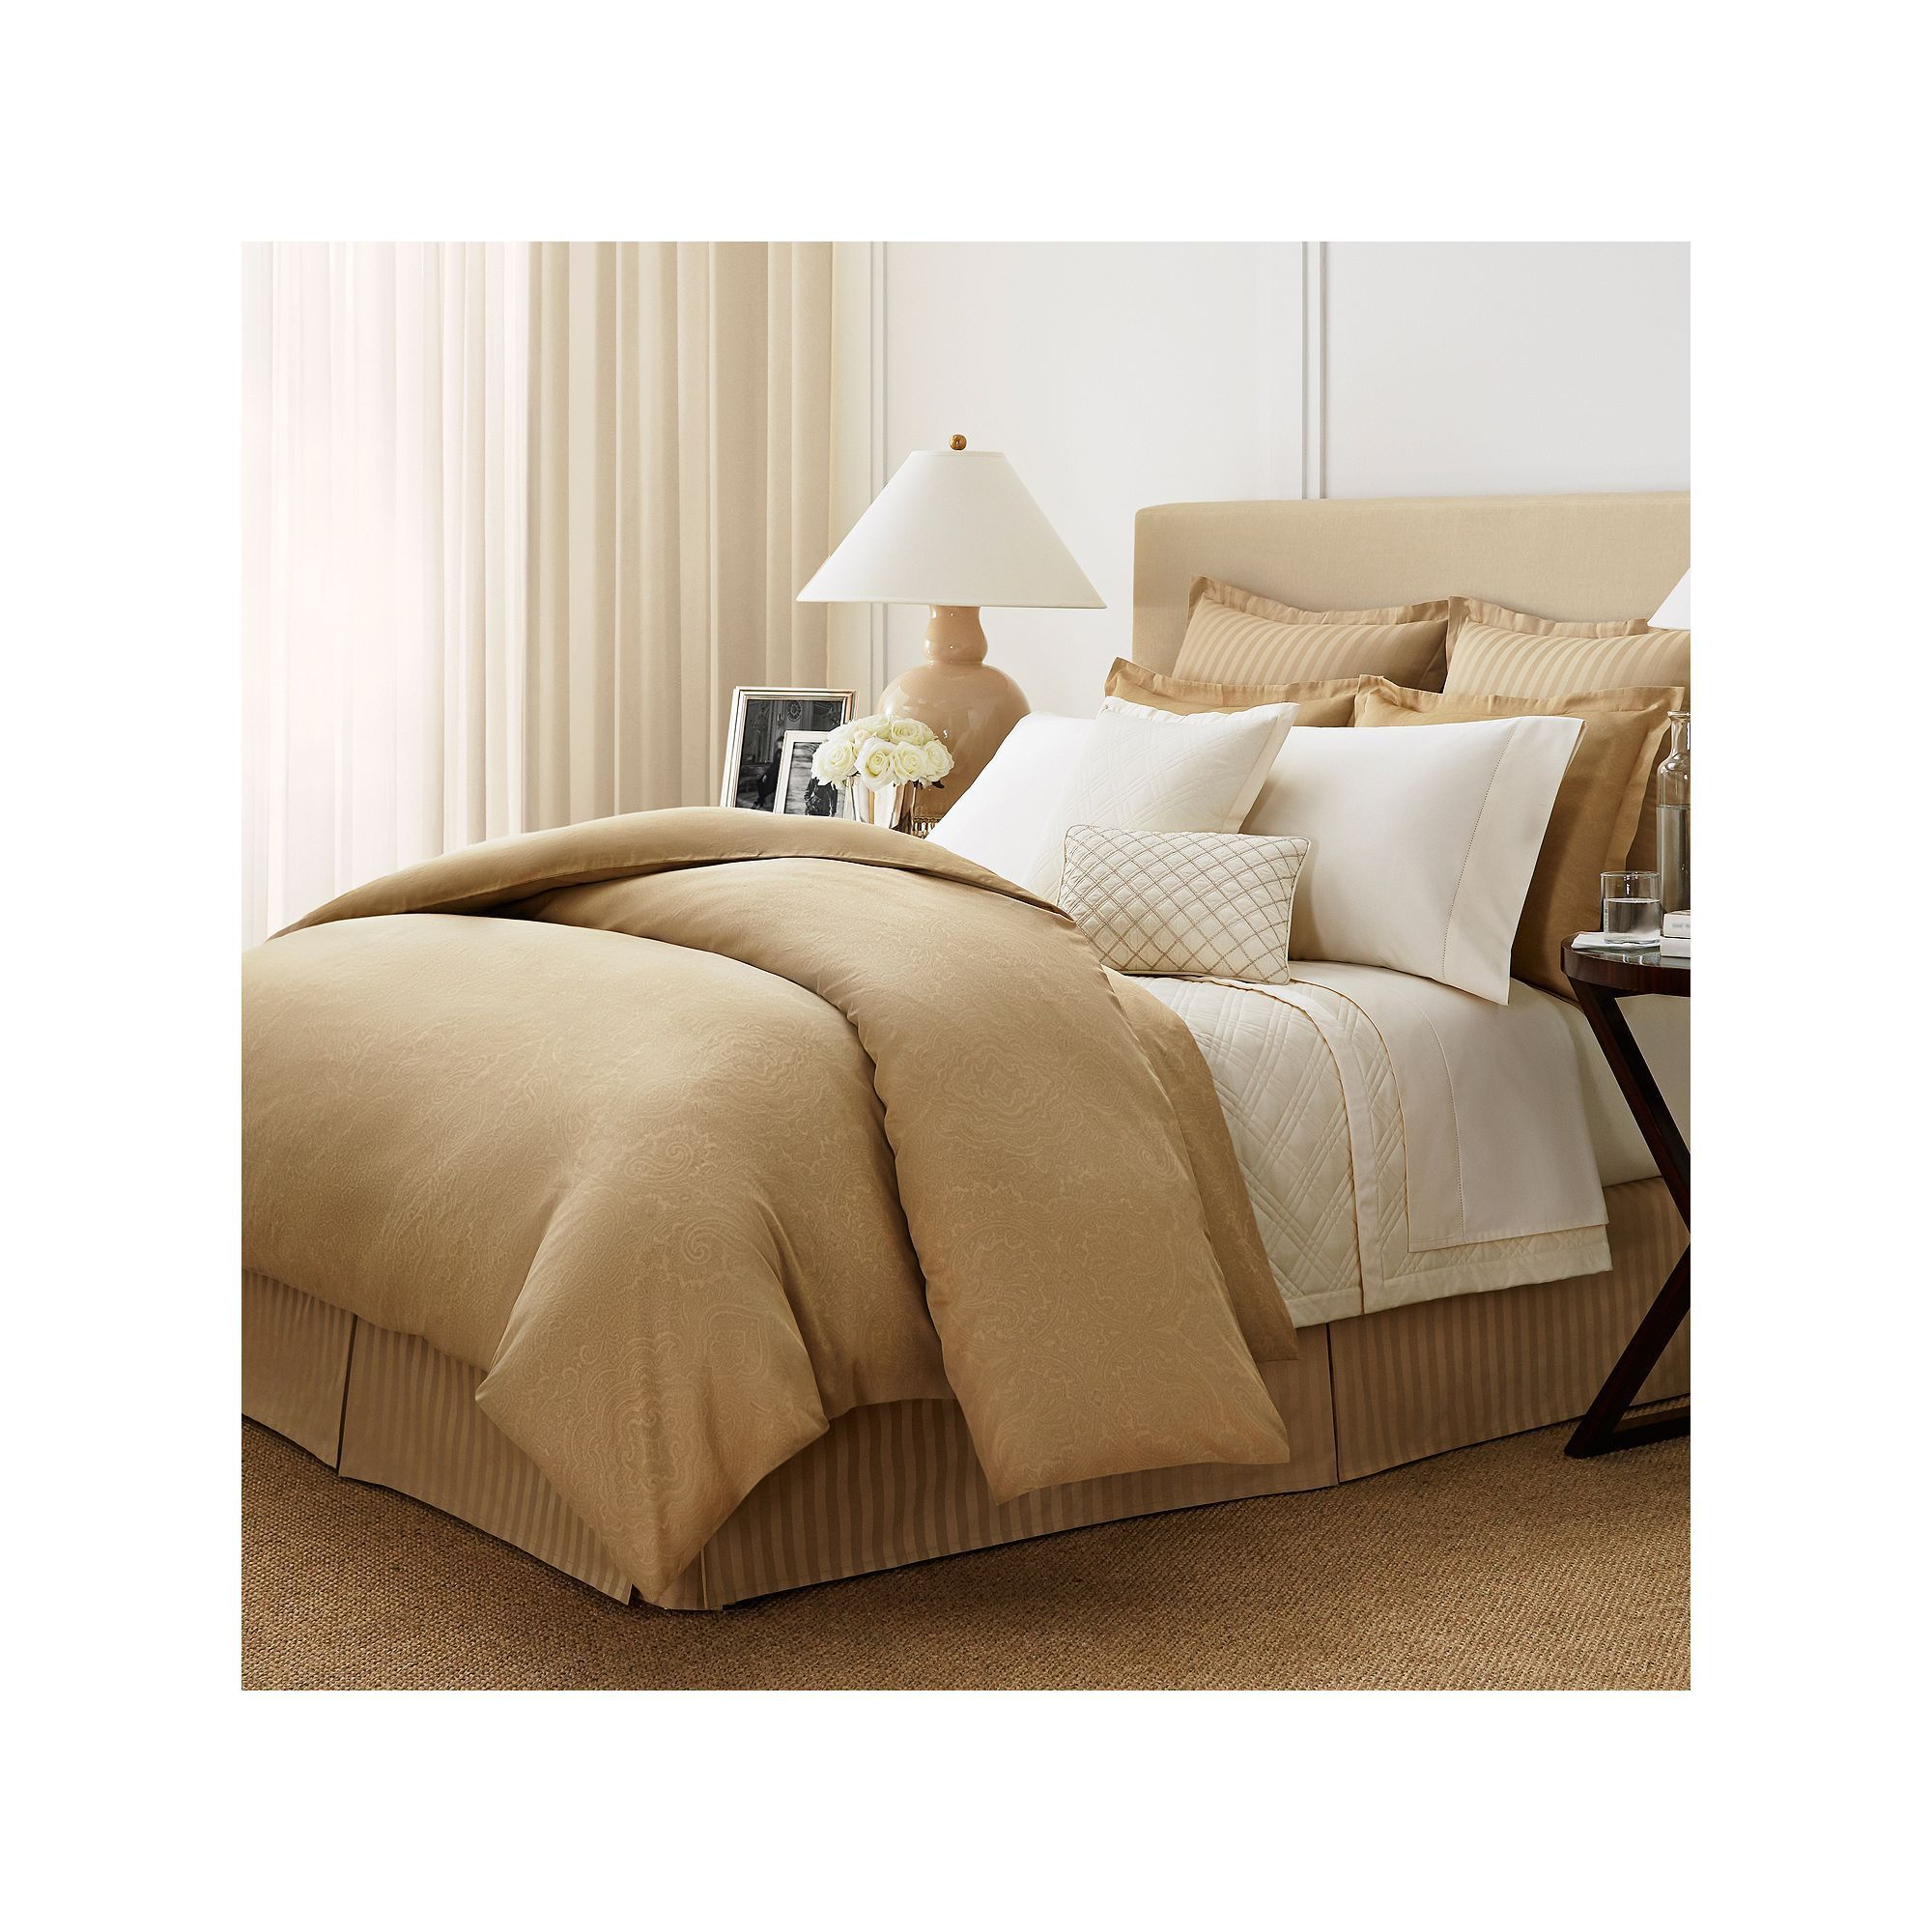 comforter chaps bath kohl bedding s catalog jsp bed set